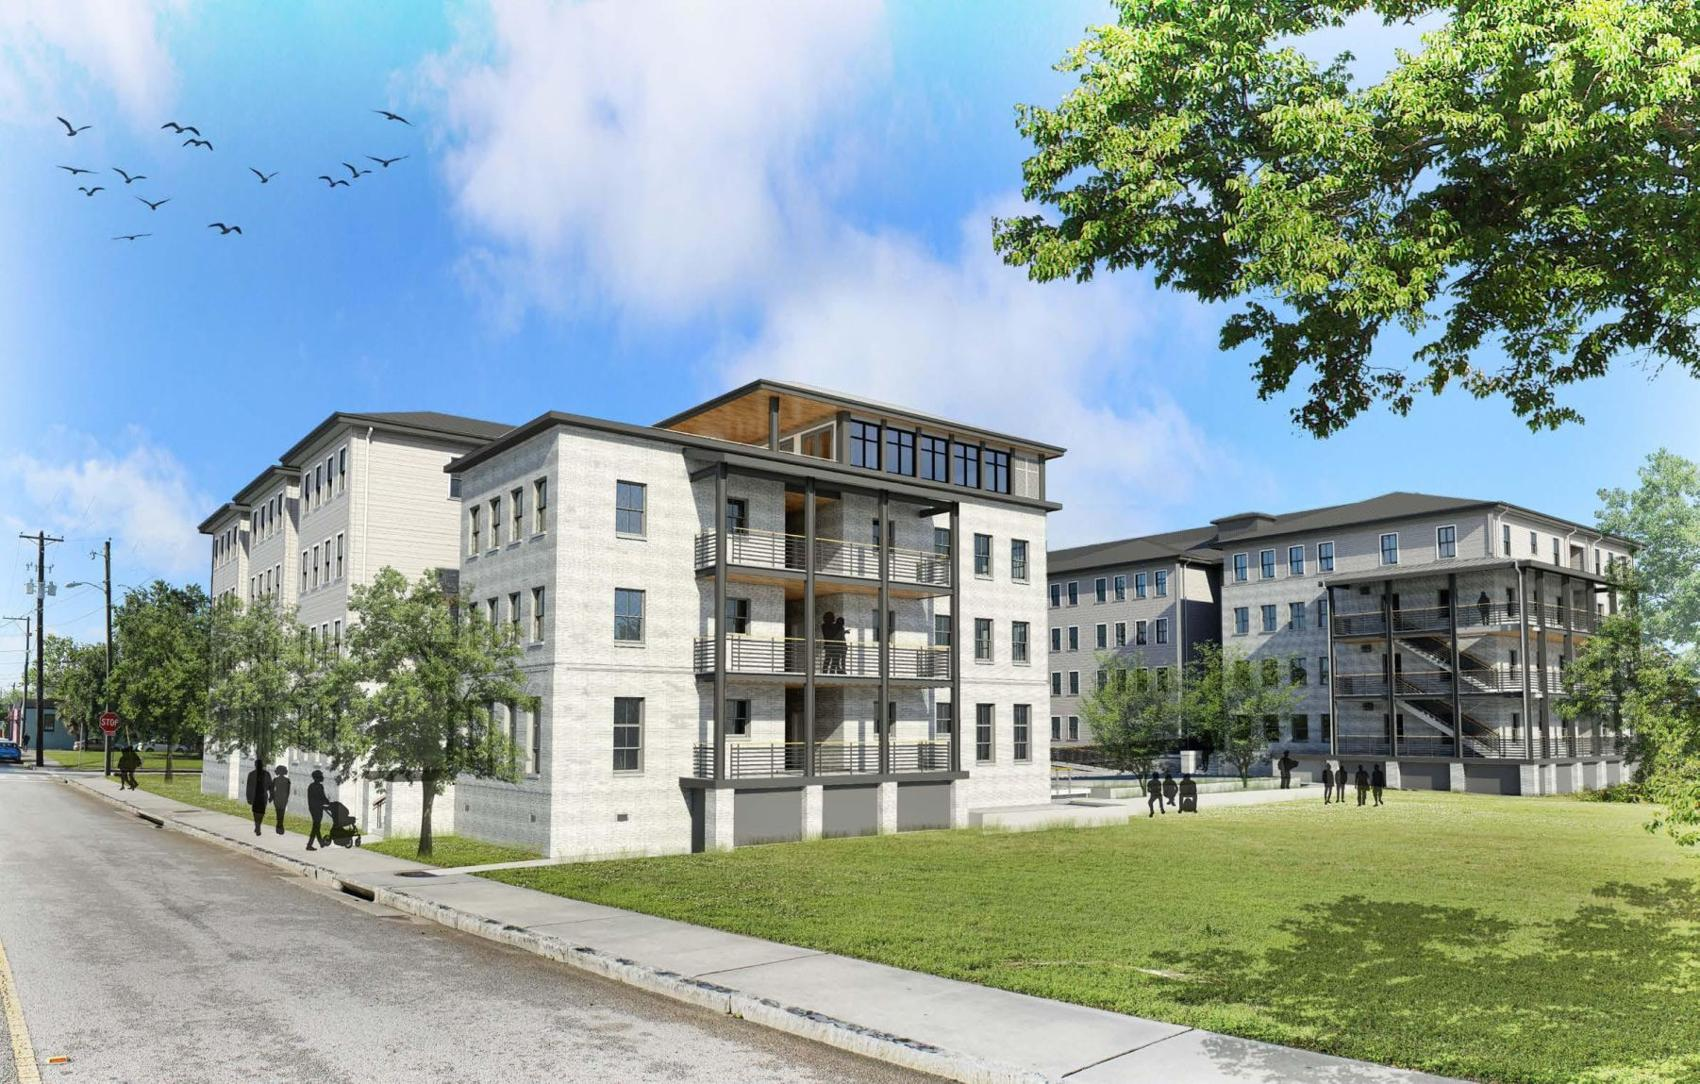 The Charleston Housing Authority is breaking ground on the new Grace Homes affordable housing complex in August.  T.Y. Lin International/Provided